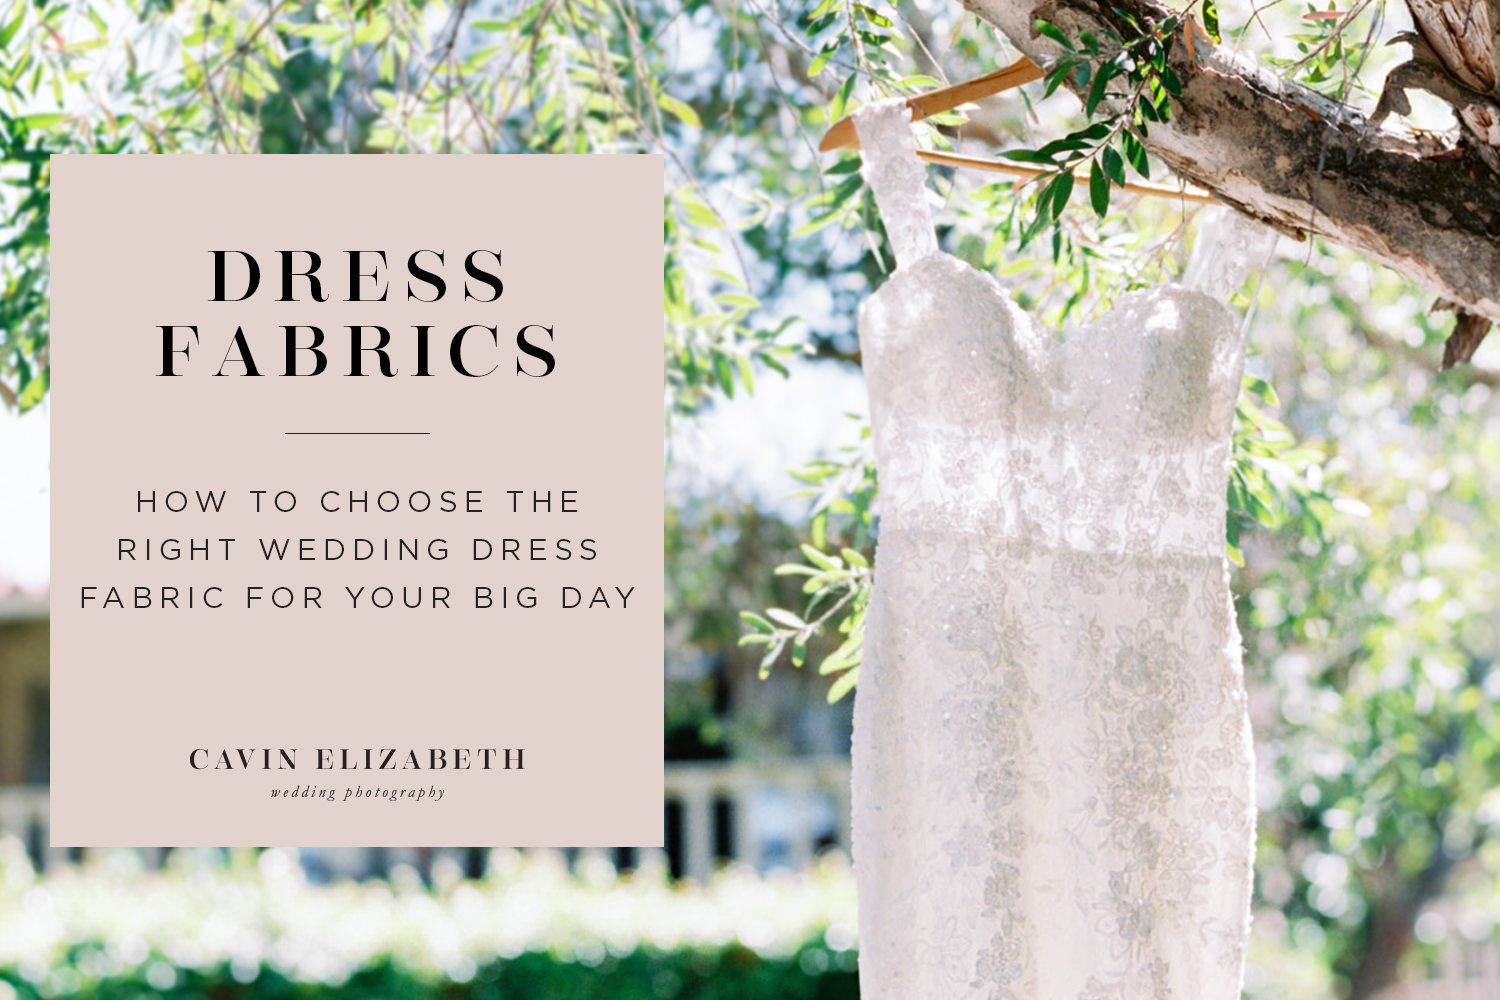 How to Choose the Right Wedding Dress Fabric For Your Big Day